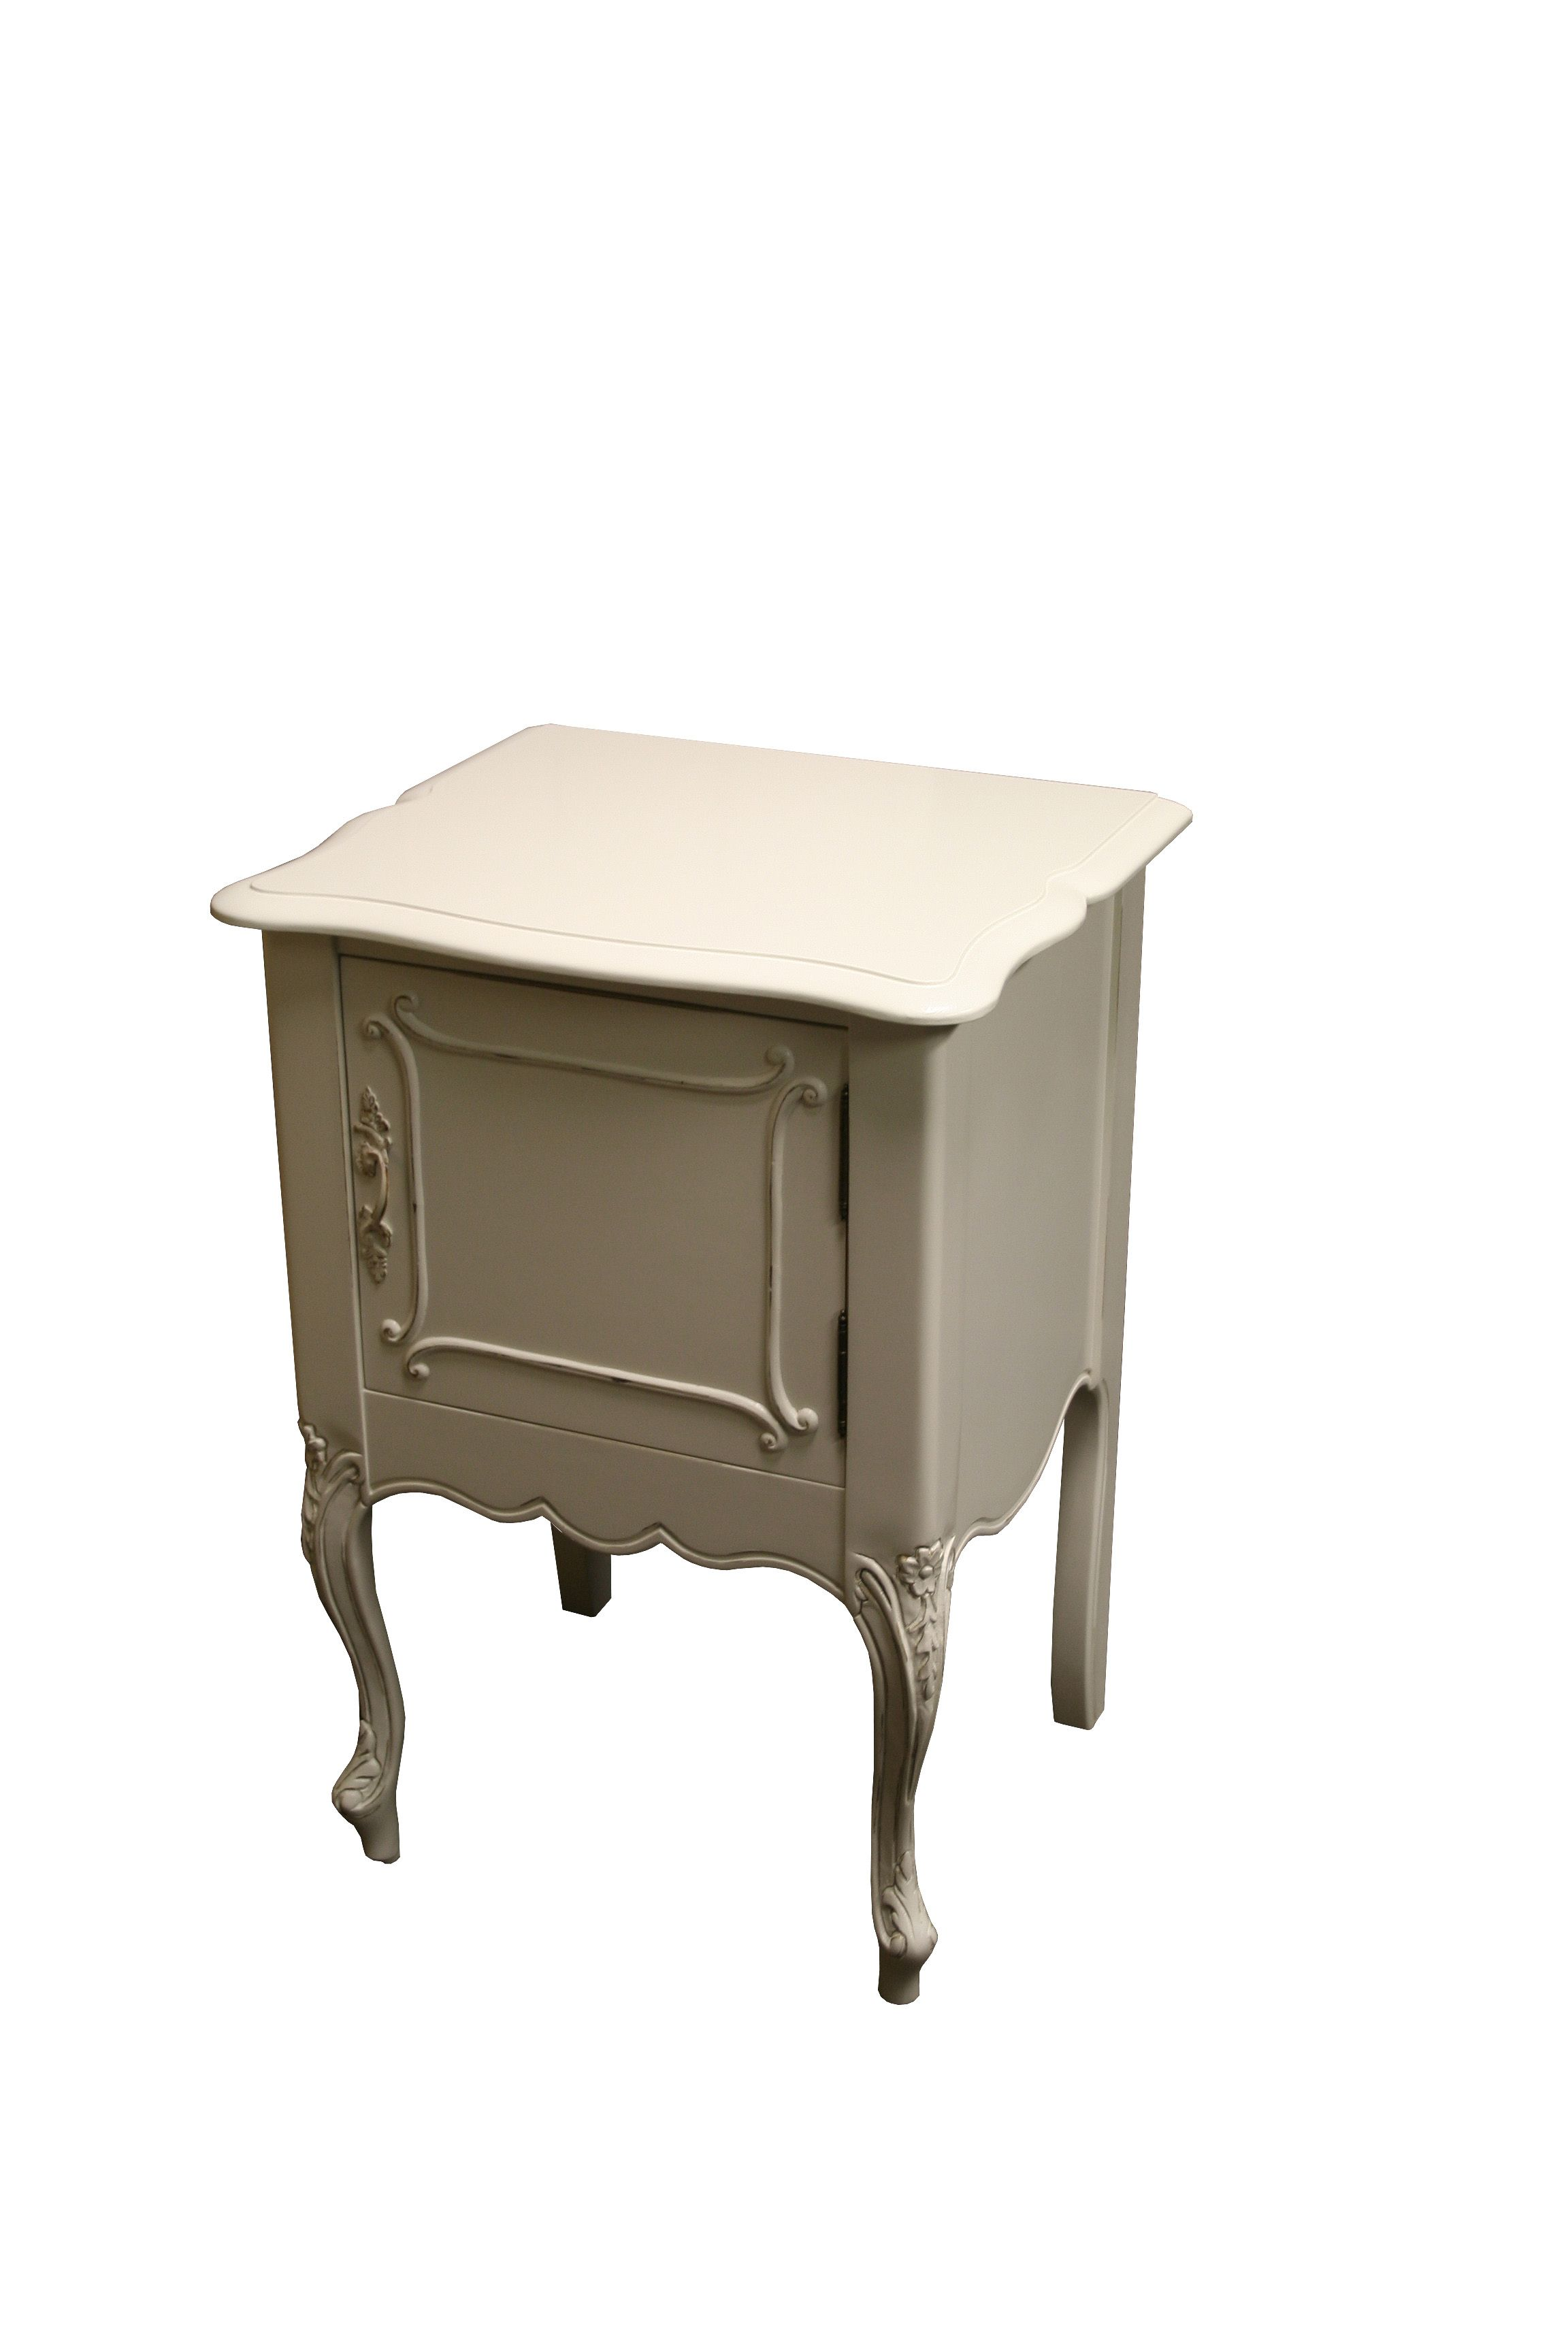 Country French Nightstand, One Door | Nightstands | Pinterest ...